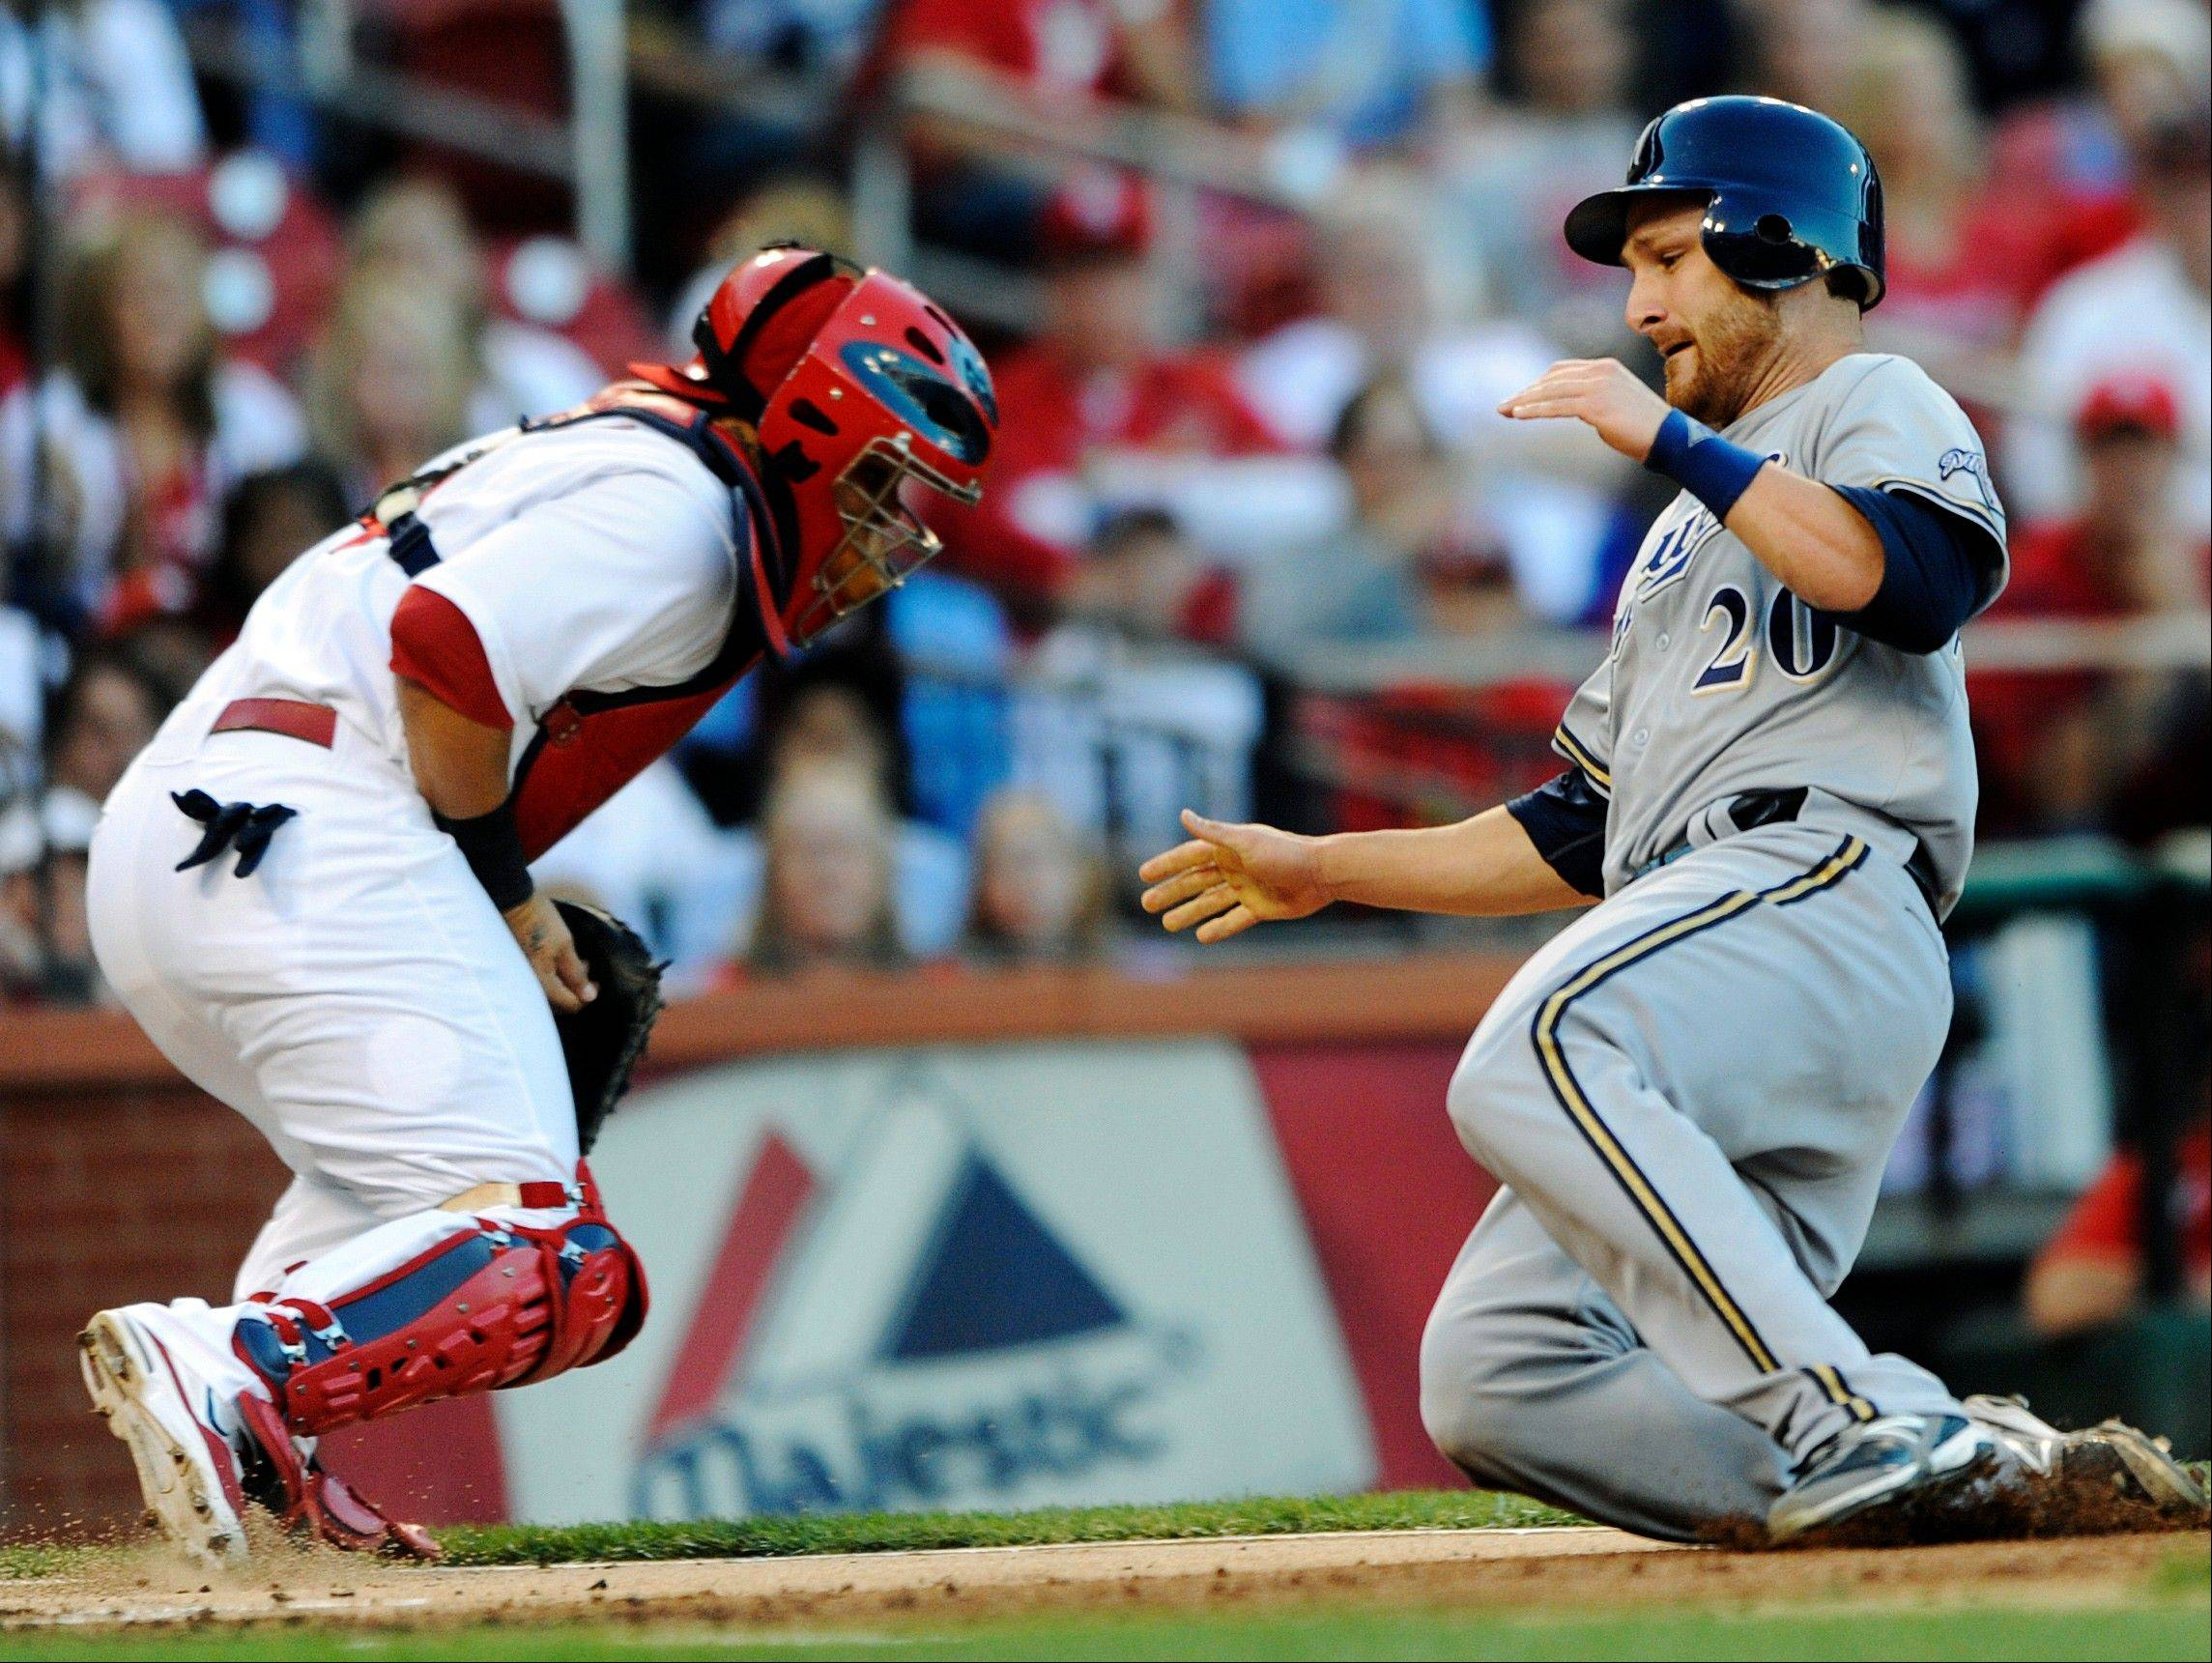 Milwaukee's Jonathan Lucroy scores on a hit by Mike Fiers in the second inning Saturday at Busch Stadium in St. Louis.